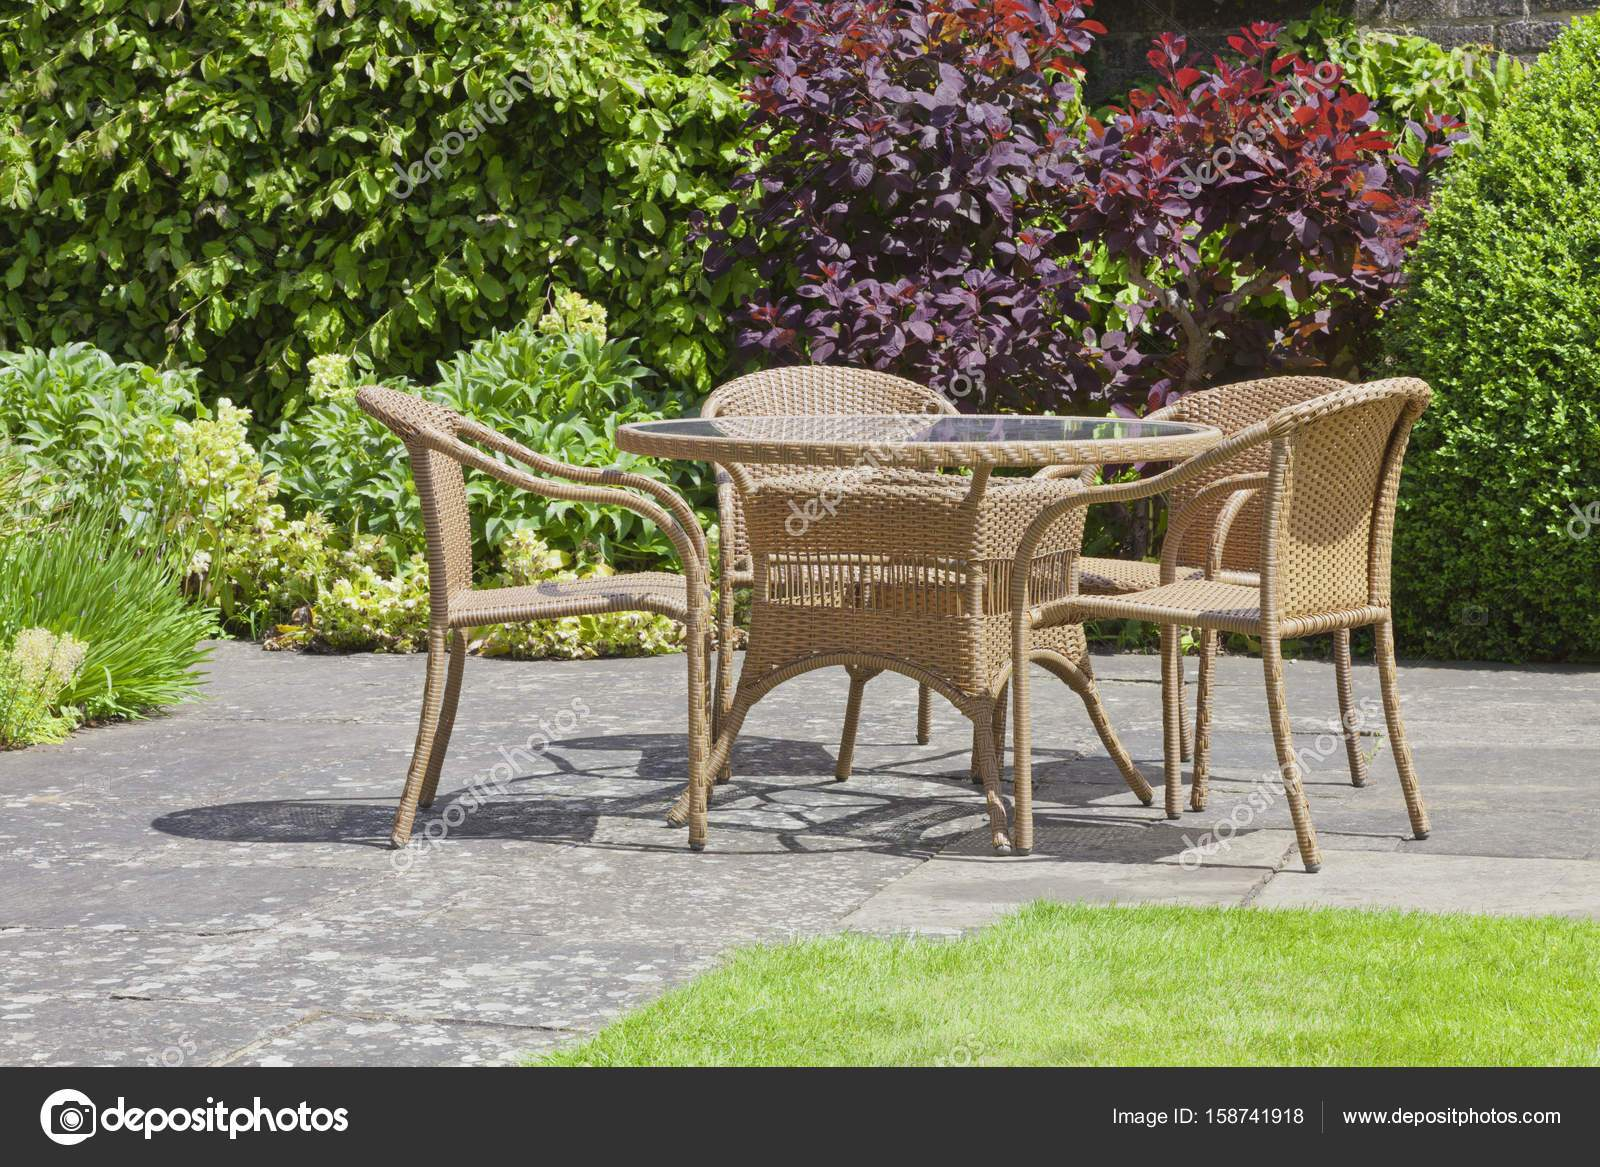 depositphotos stock photo patio chairs and table in